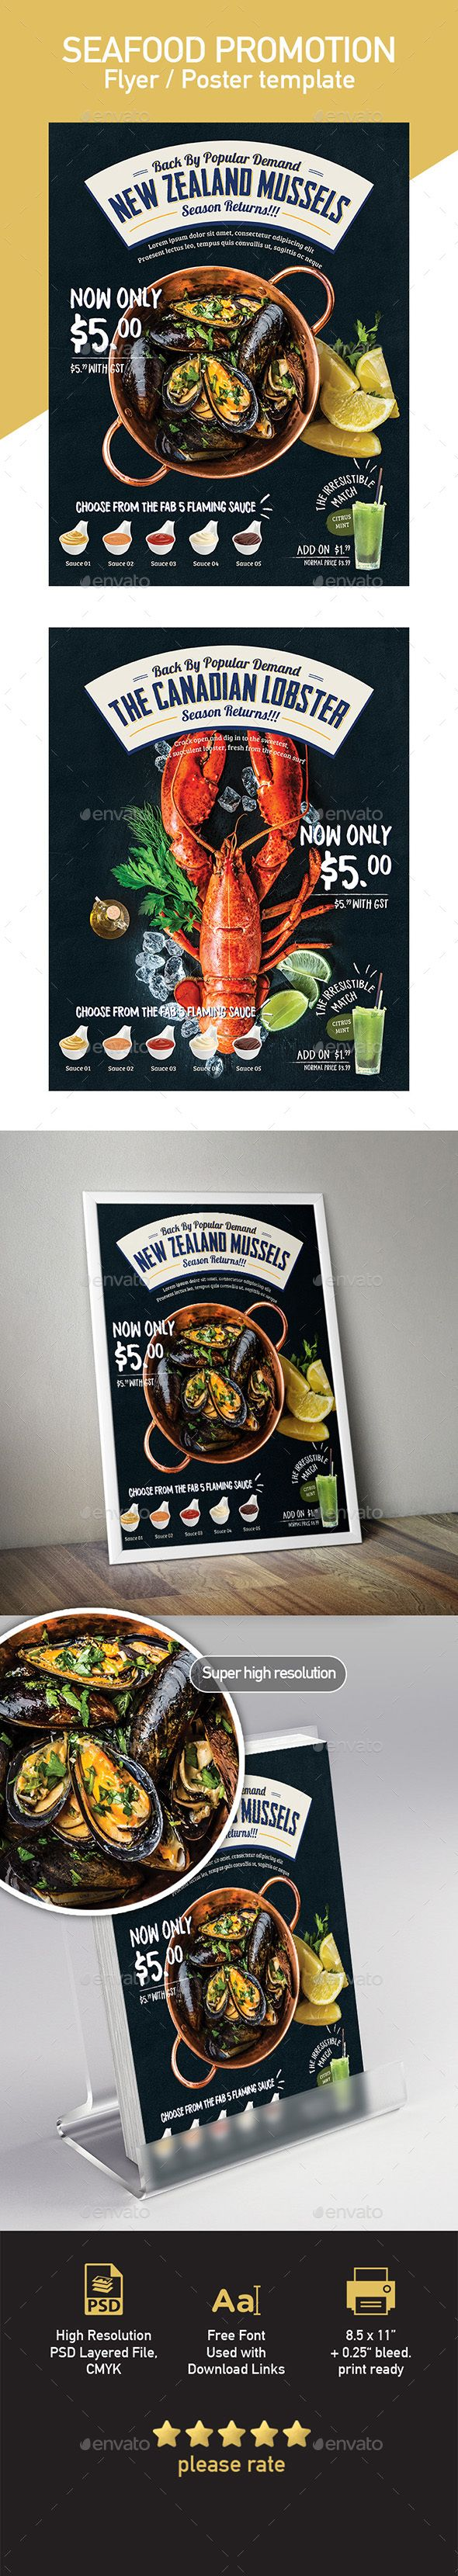 Seafood Poster / Flyer Menu Template — Photoshop PSD #magazine #food • Download ➝ https://graphicriver.net/item/seafood-poster-flyer-menu-template/20133512?ref=pxcr